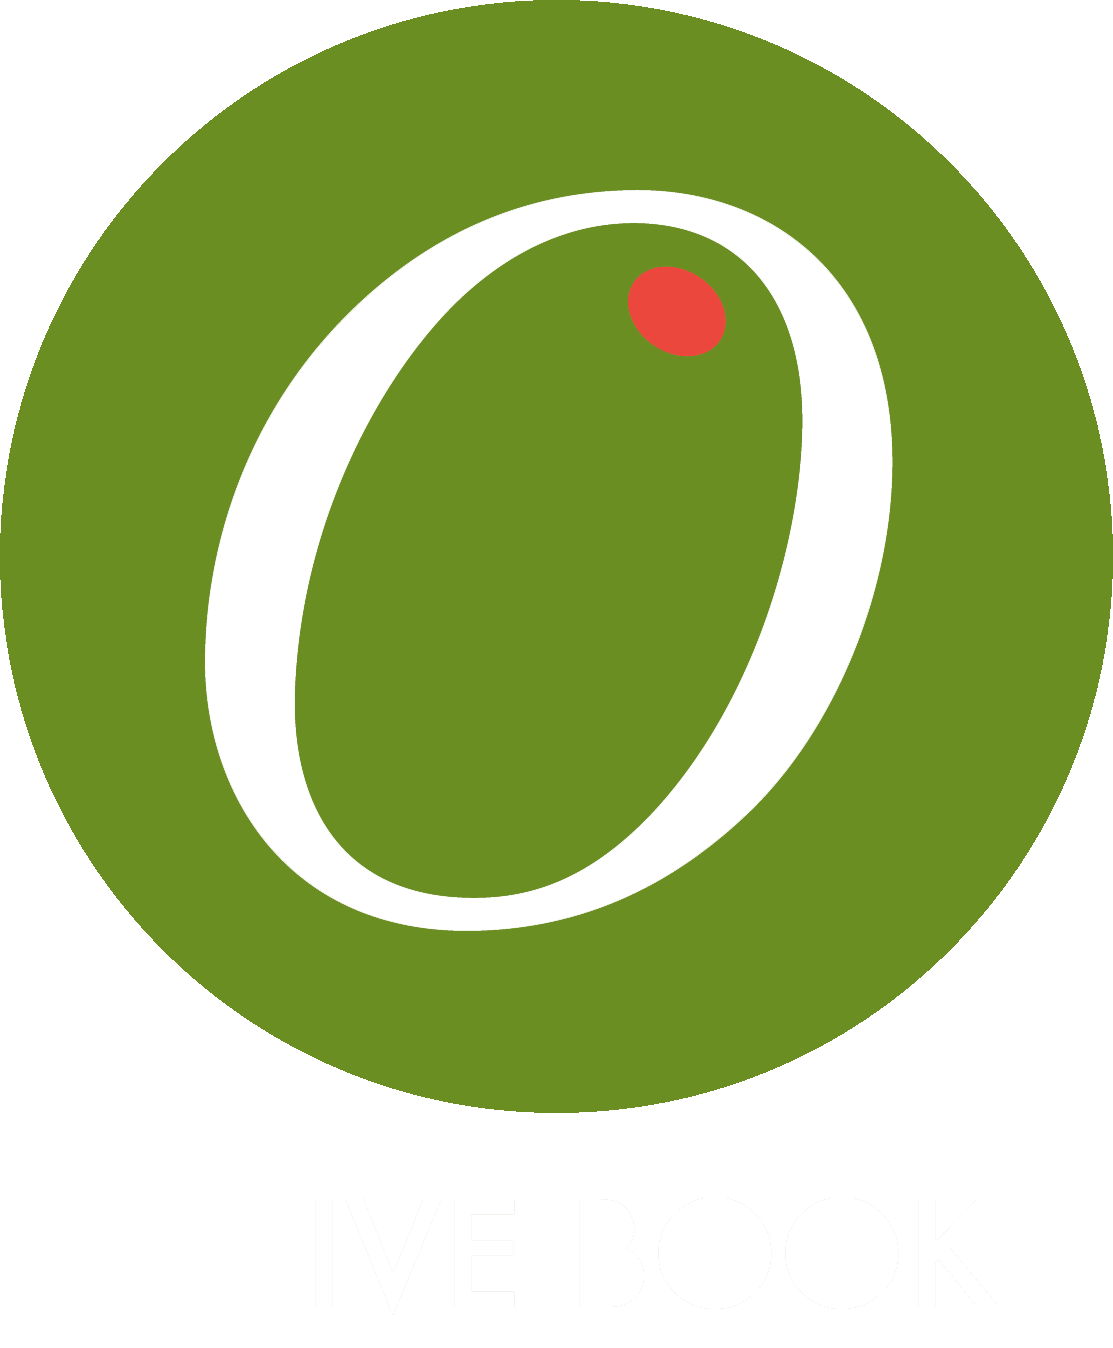 The Olive Book Home Page